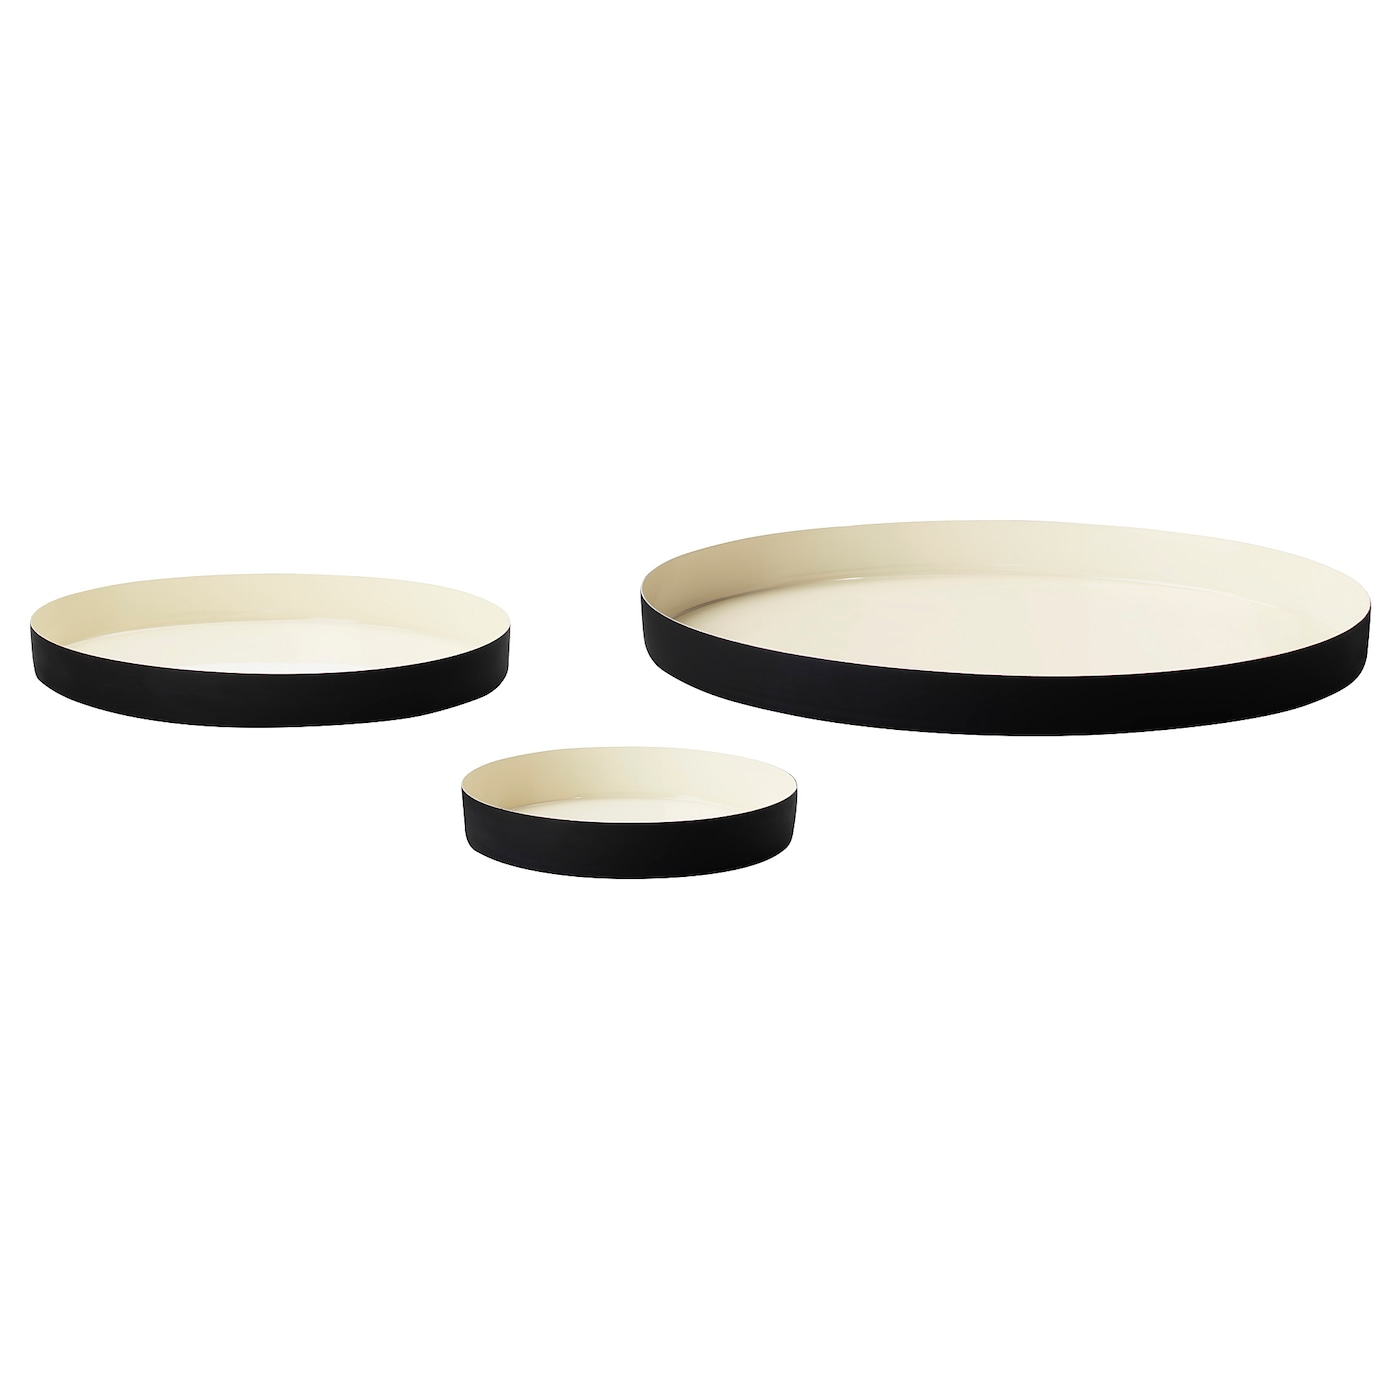 IKEA GLITTRIG candle dish, set of 3